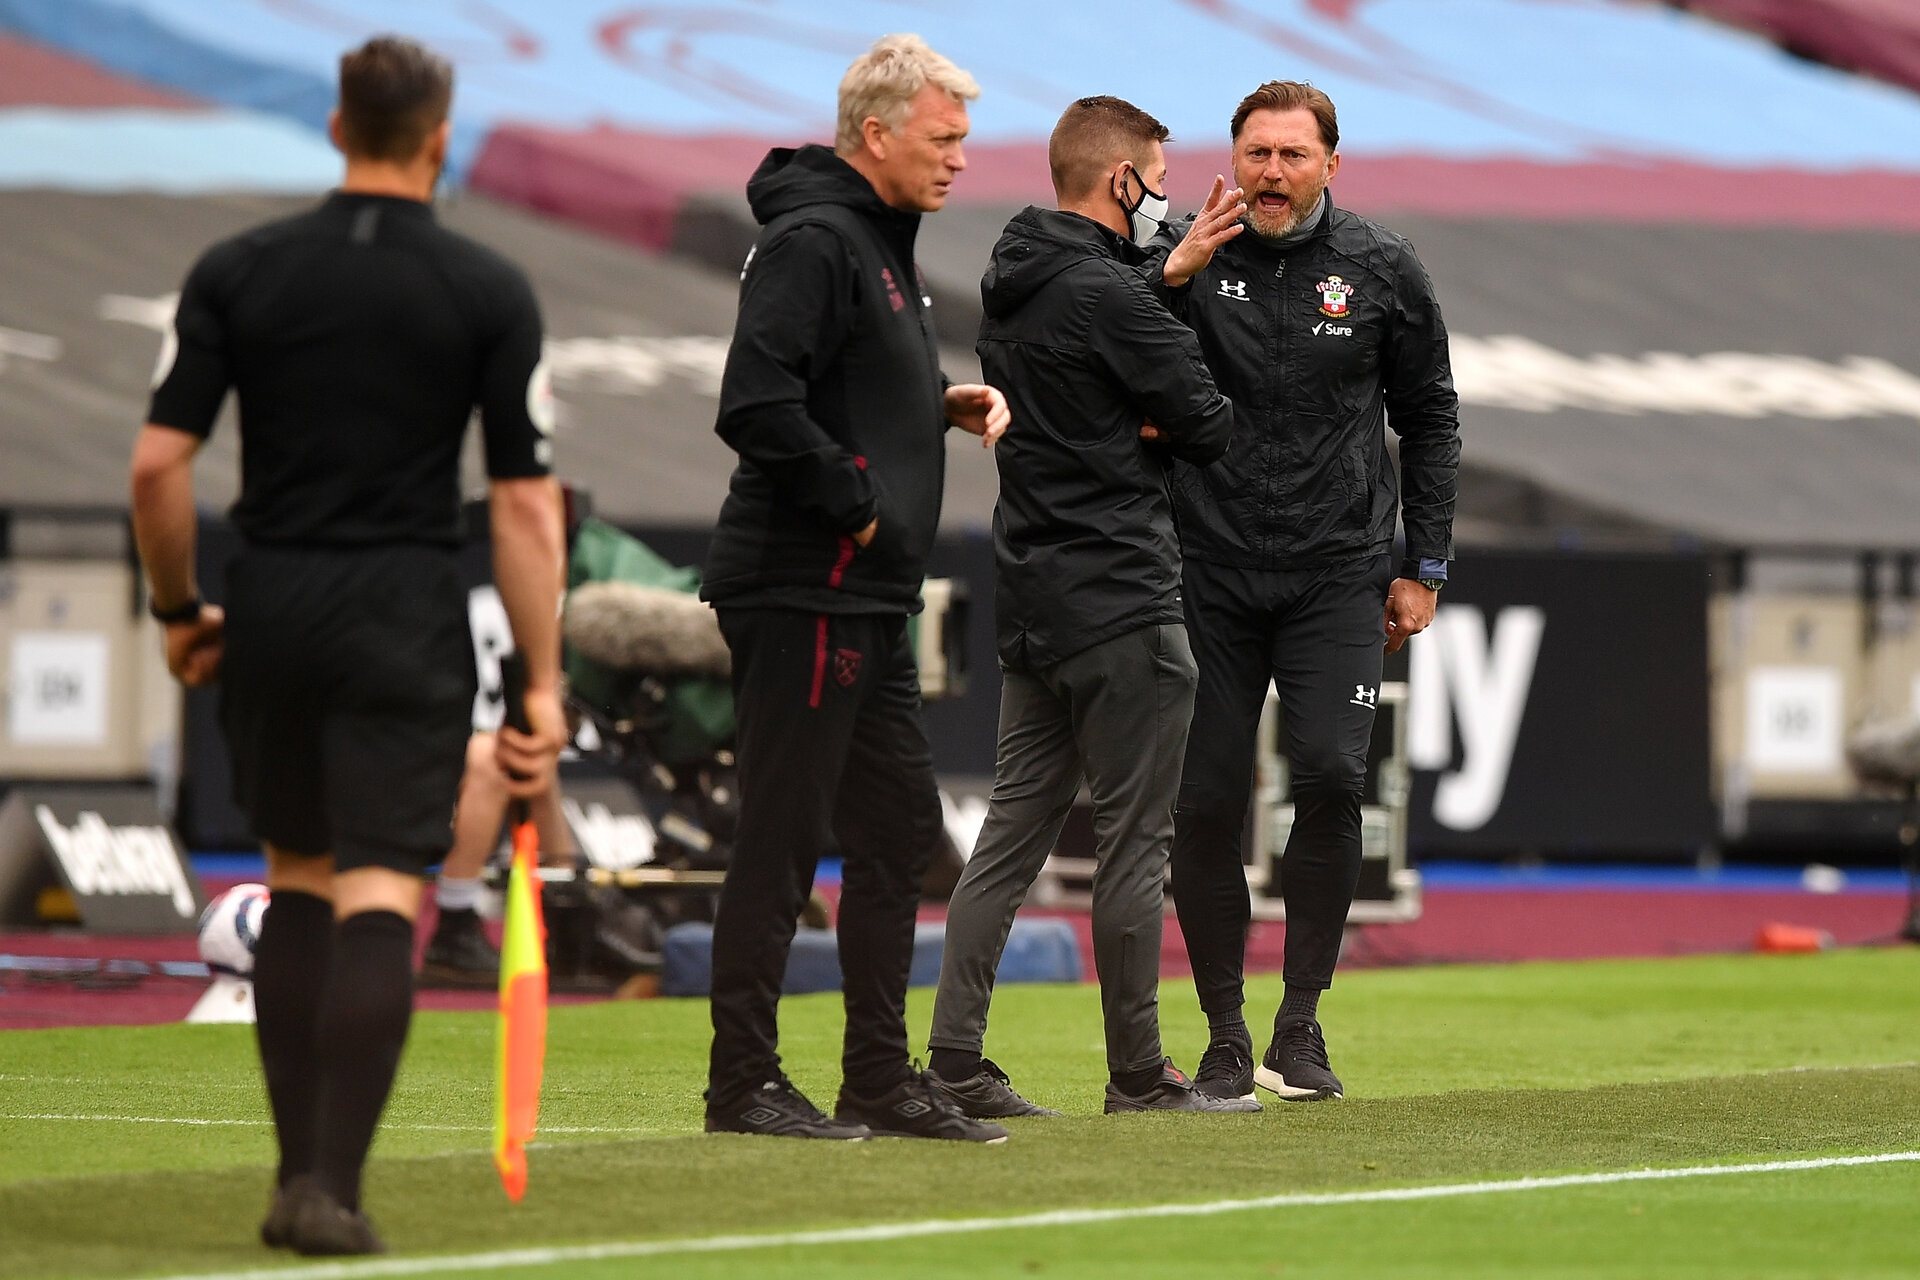 LONDON, ENGLAND - MAY 23: Ralph Hasenhuttl, Manager of Southampton reacts during the Premier League match between West Ham United and Southampton at London Stadium on May 23, 2021 in London, England. A limited number of fans will be allowed into Premier League stadiums as Coronavirus restrictions begin to ease in the UK. (Photo by Justin Tallis - Pool/Getty Images)